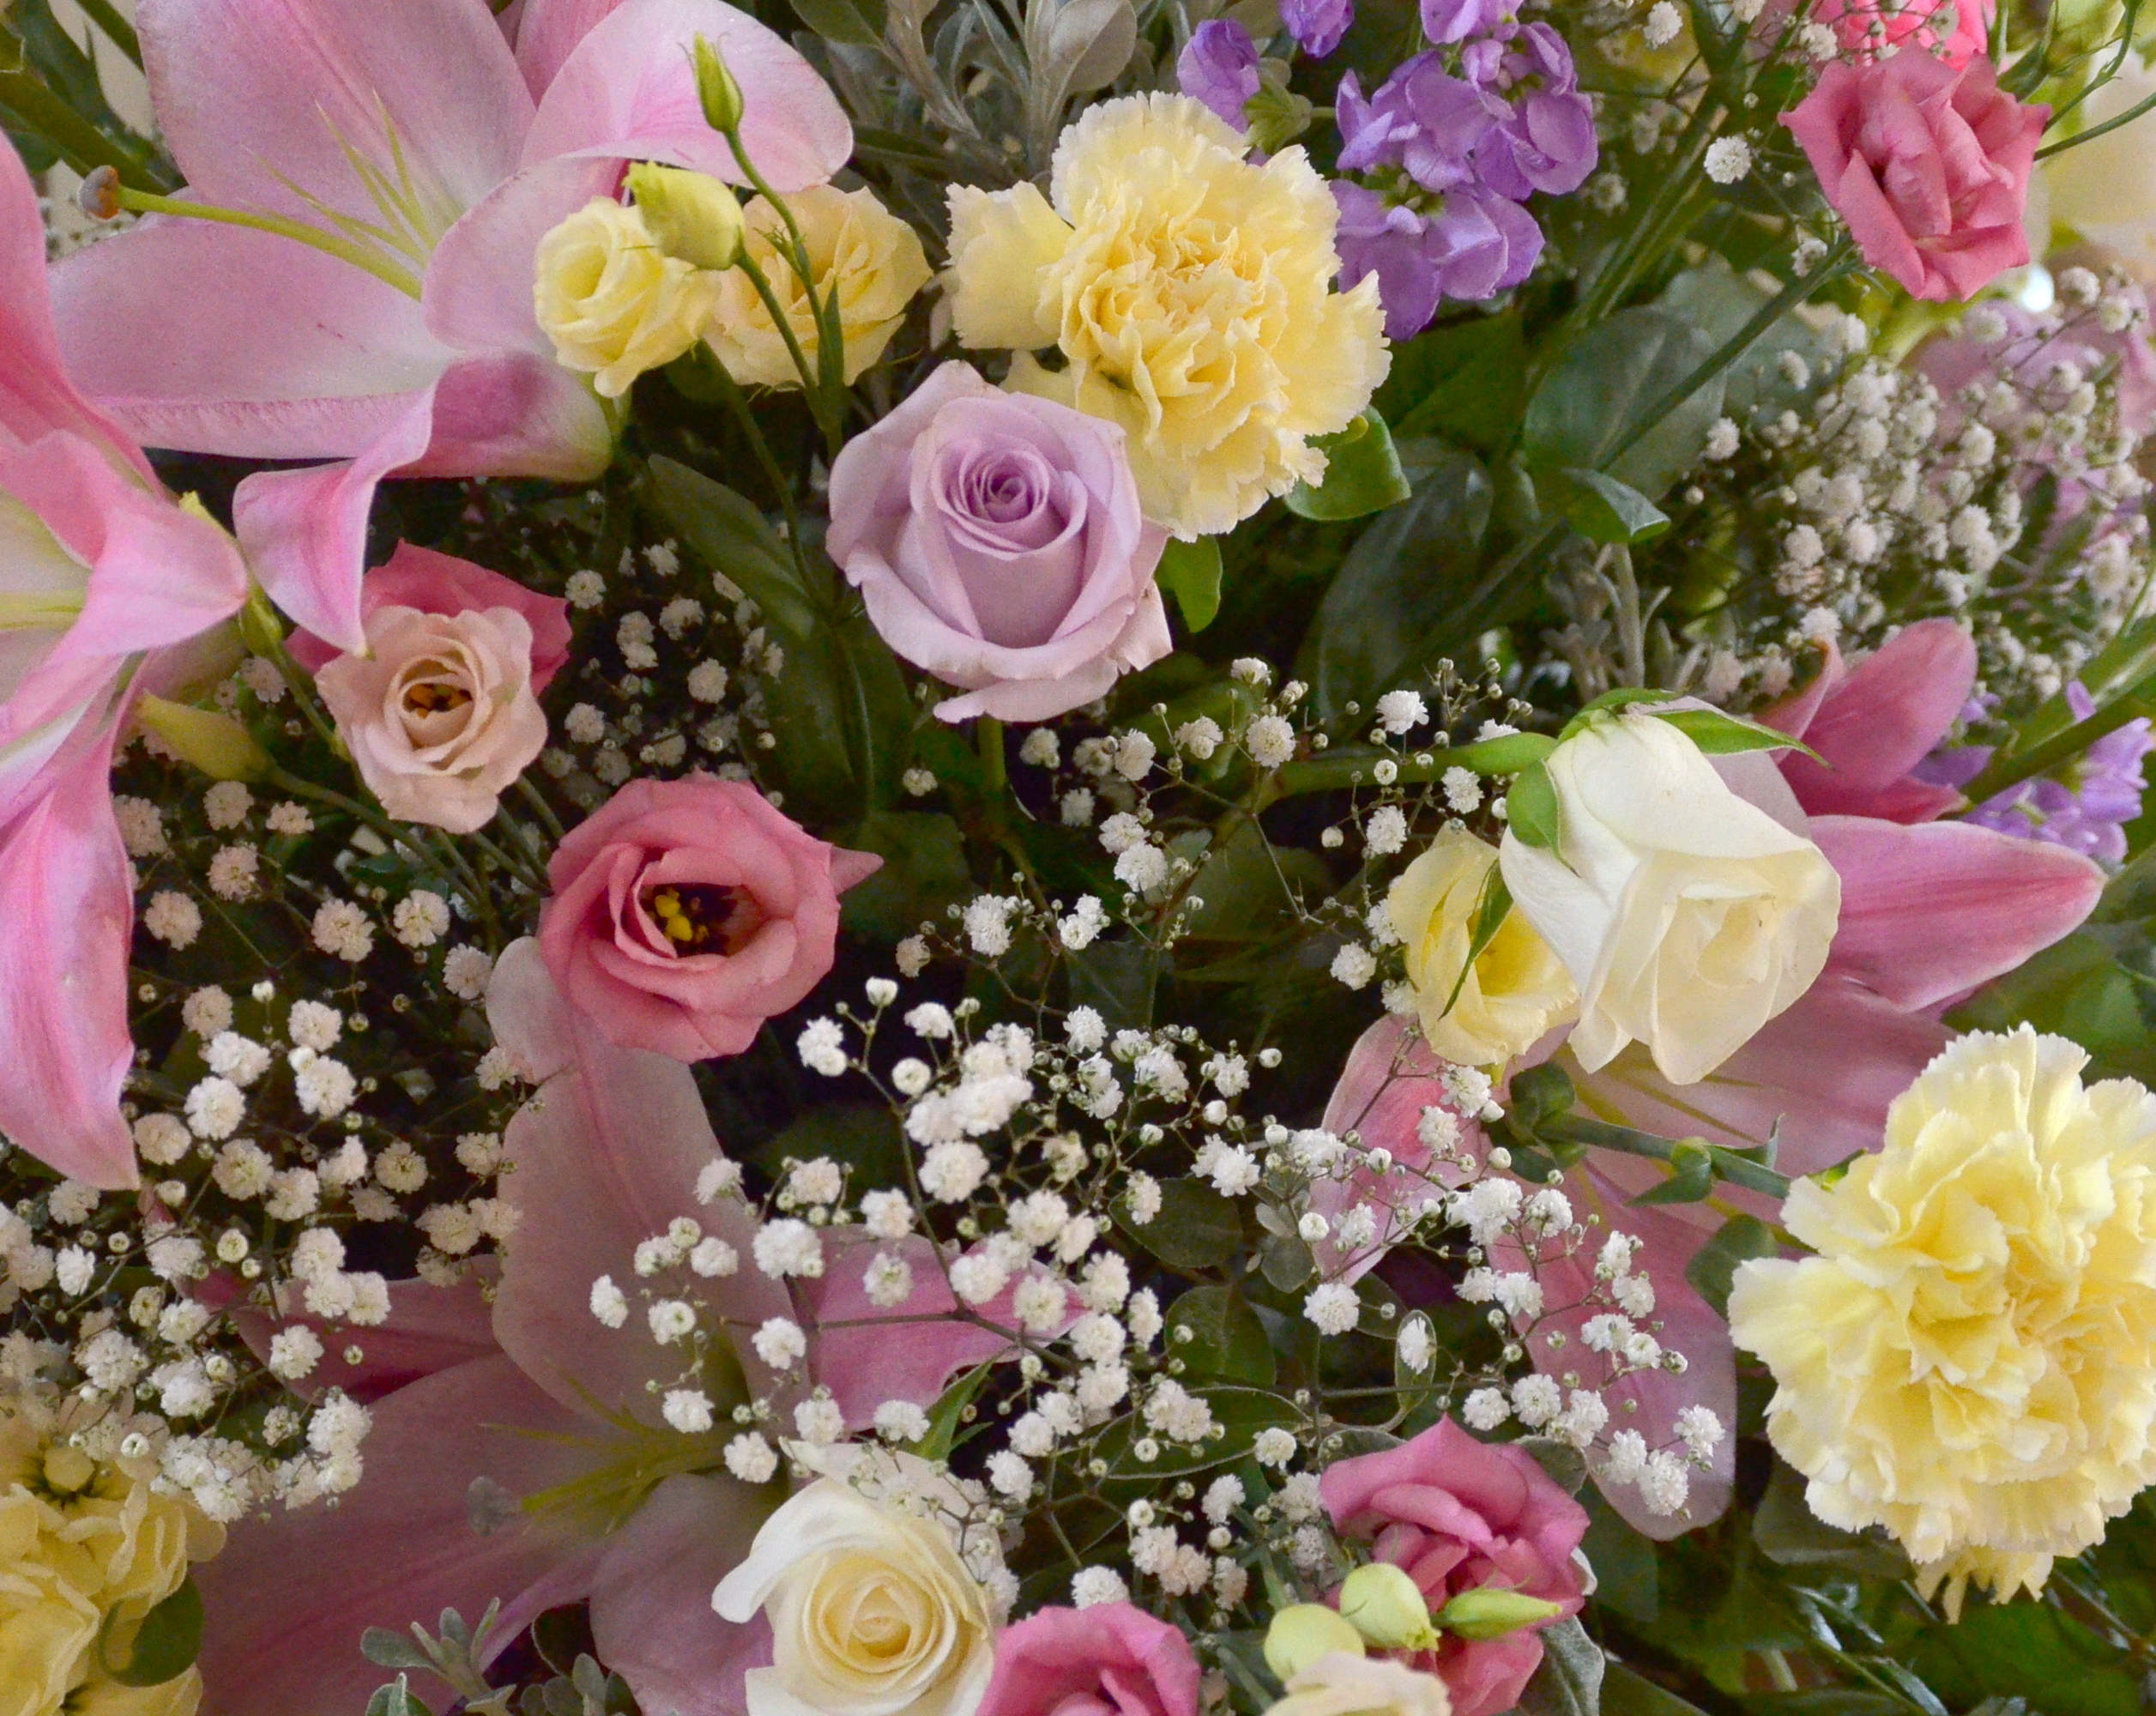 Free Photo Flower Bouquet Fragrant Lilies Roses Free Download